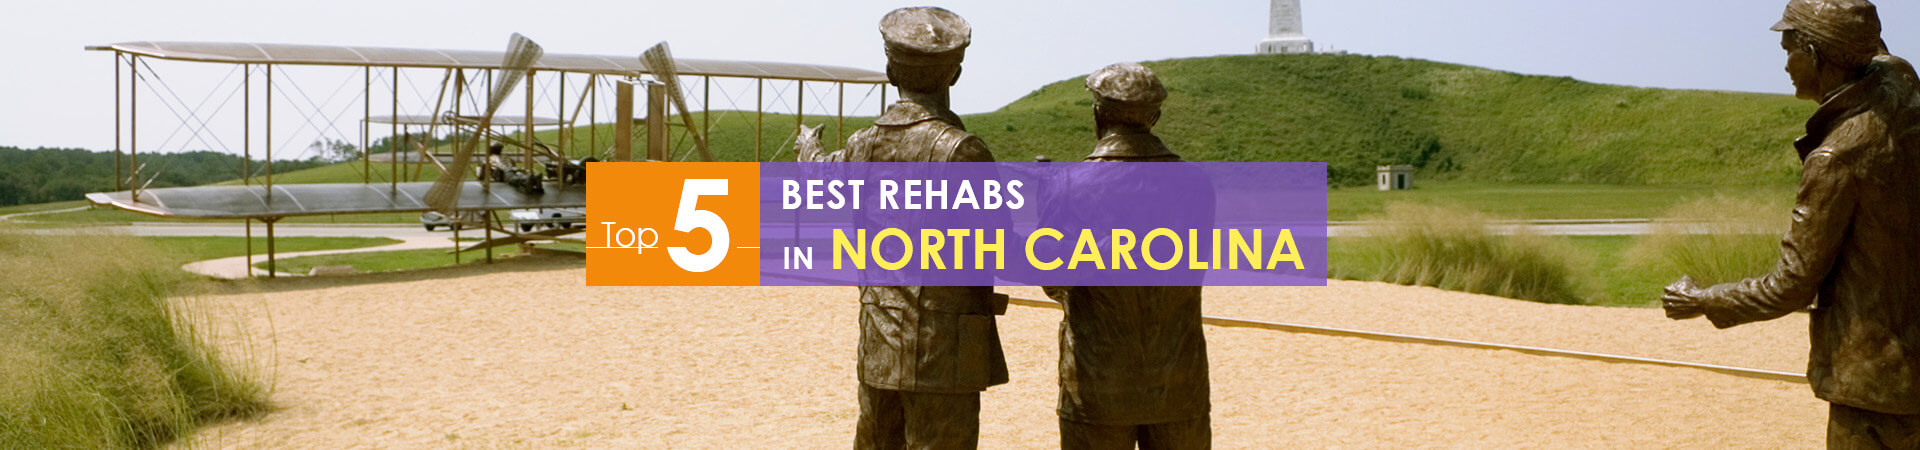 aviation memorial in NC and top 5 rehabs caption